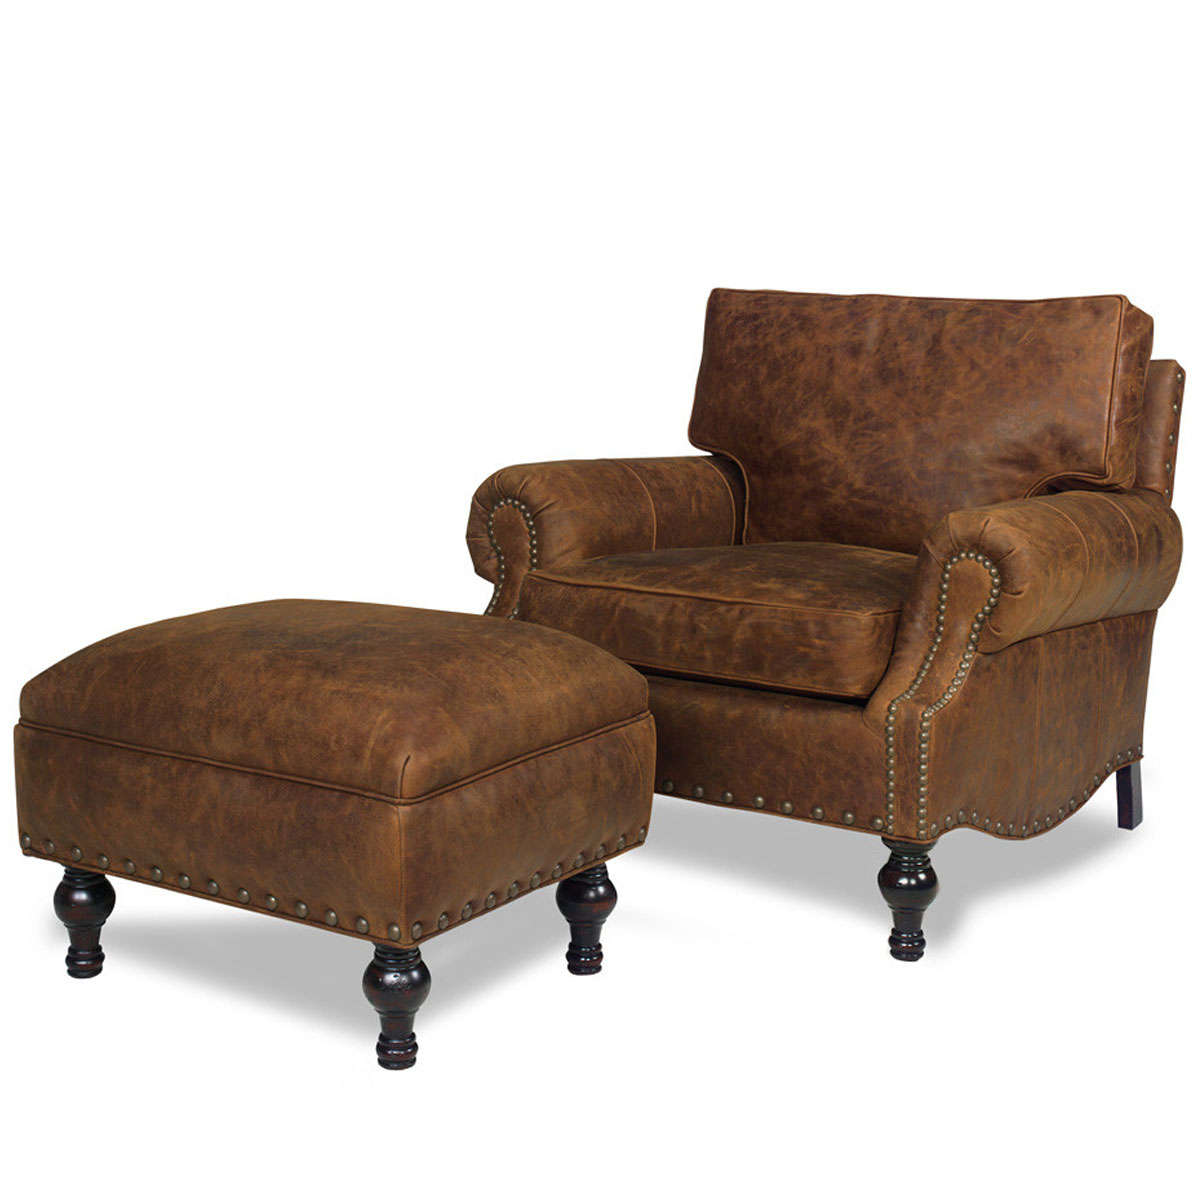 2170 Bronson Ottoman and 2171 Bronson Chair